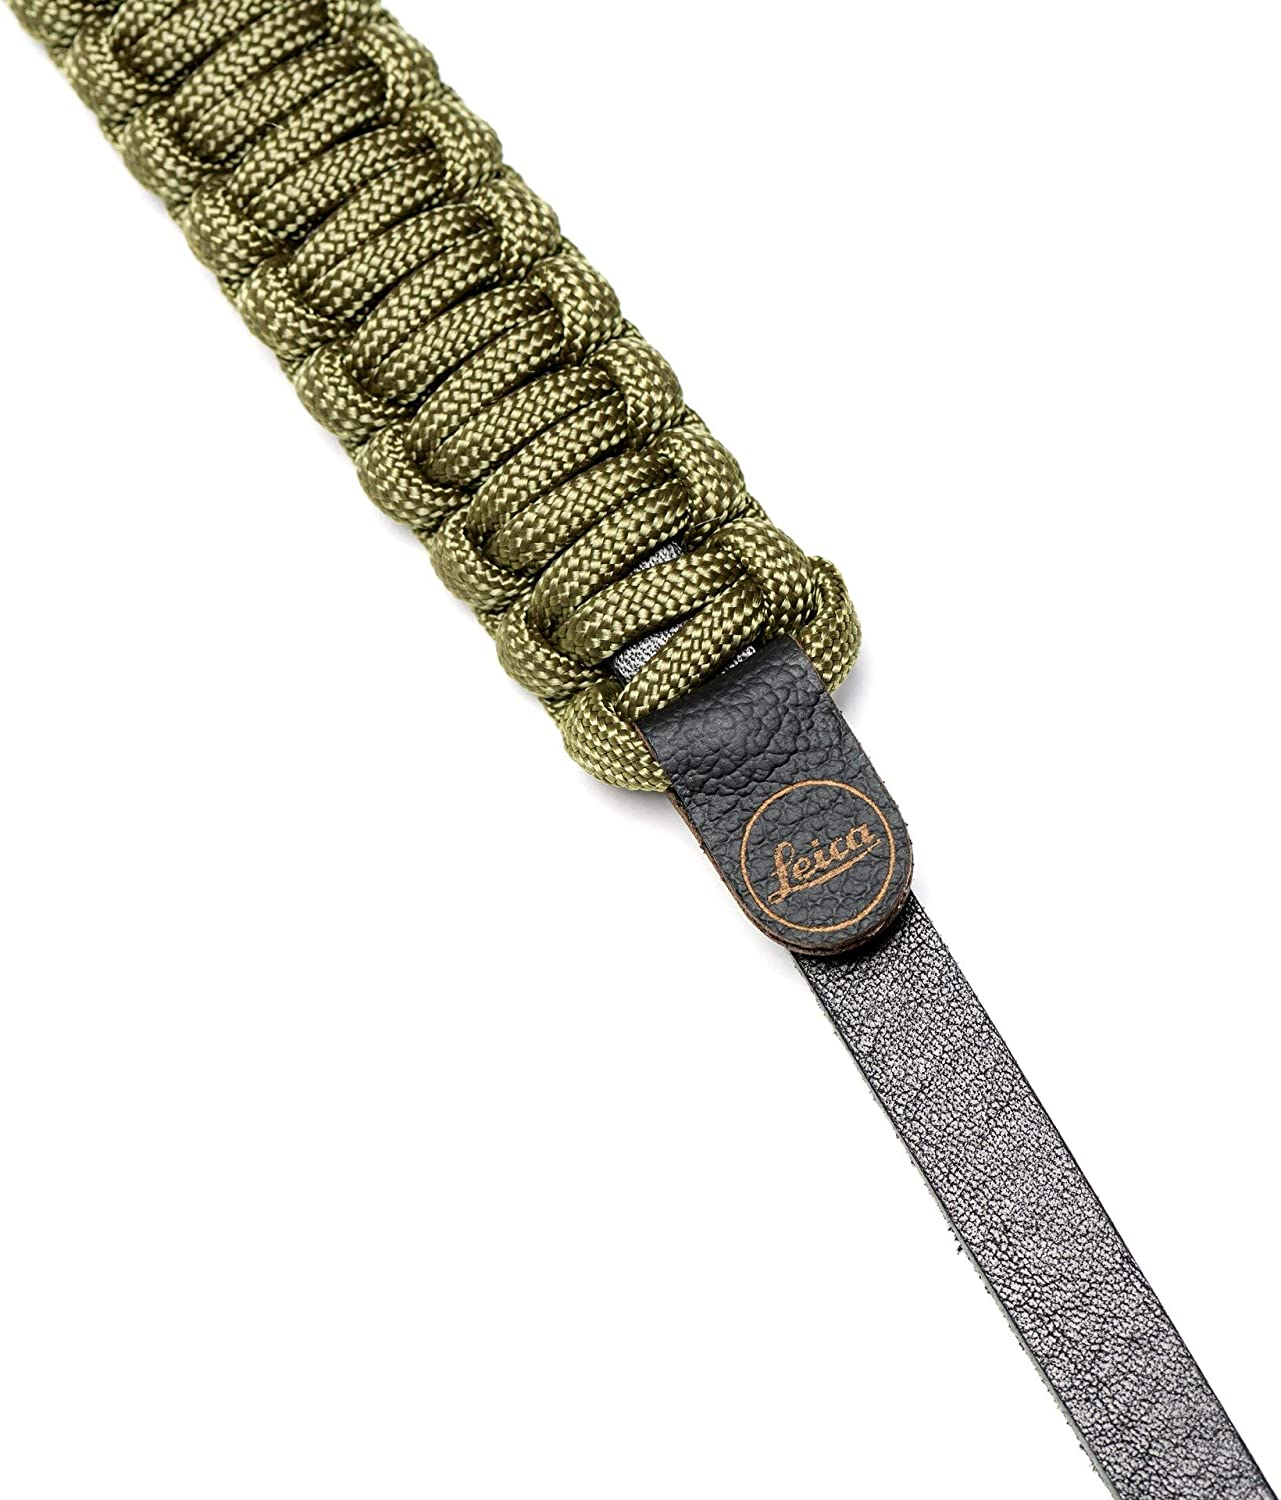 for Leica Sony Canon Nikon DSLR Mirrorless Cameras 126cm Leica Camera Paracord Strap Created by COOPH Neck Strap Shoulder Strap Made from Paracord Rope and German Leather Black//Olive